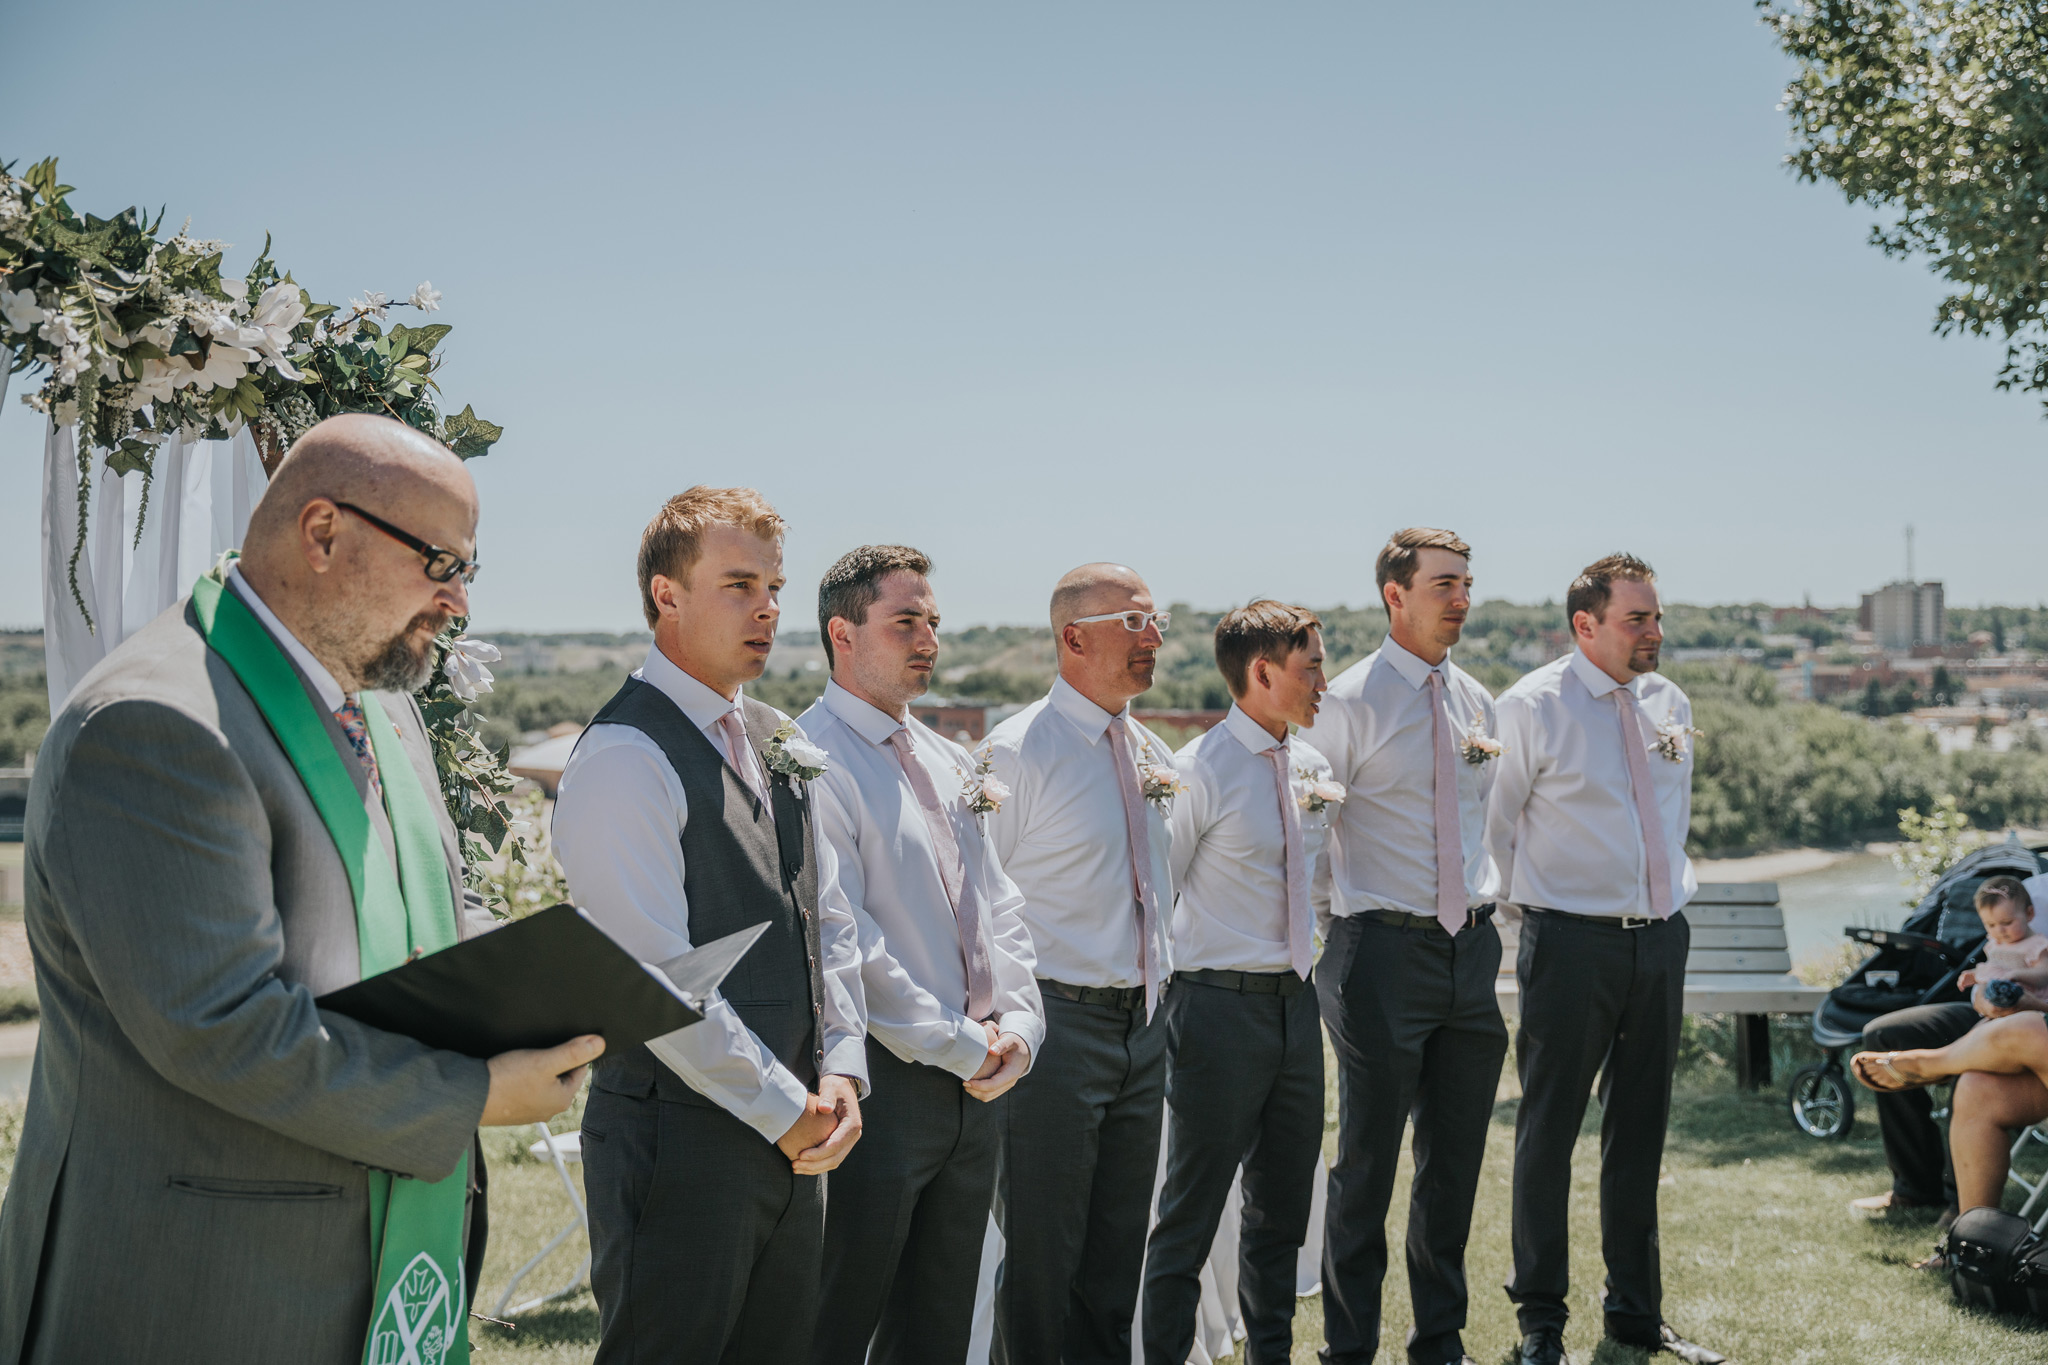 groom and groomsmen standing for the ceremony